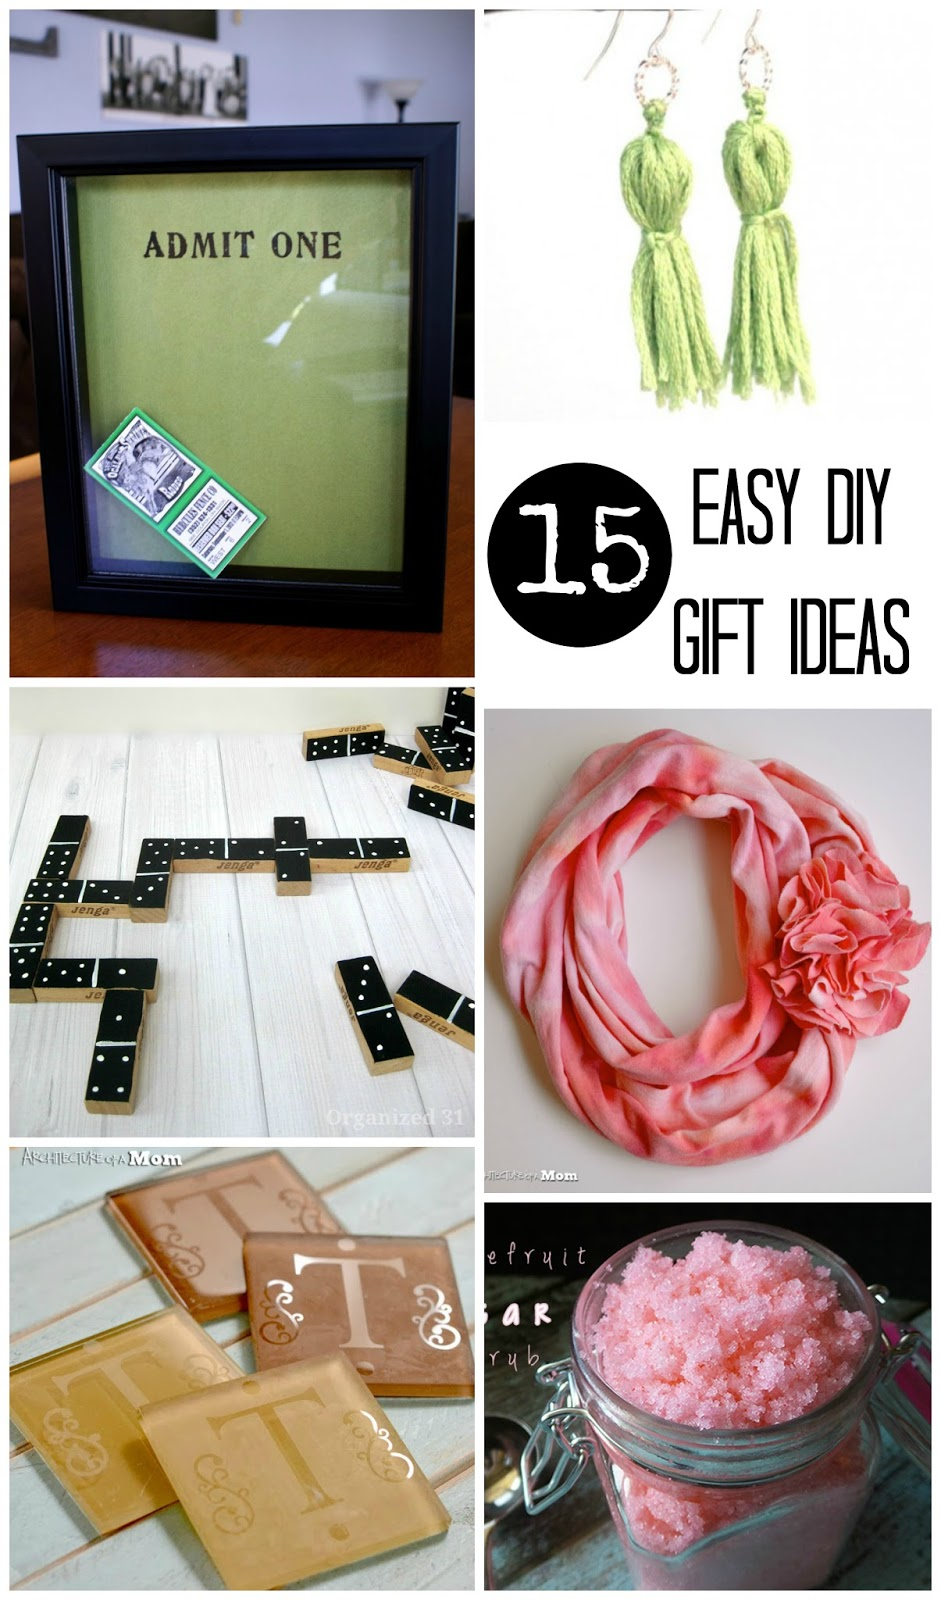 Easy Diy Gifts Diy Gifts And Easy Diy On Pinterest: Architecture Of A Mom: 15 Easy DIY Gift Ideas